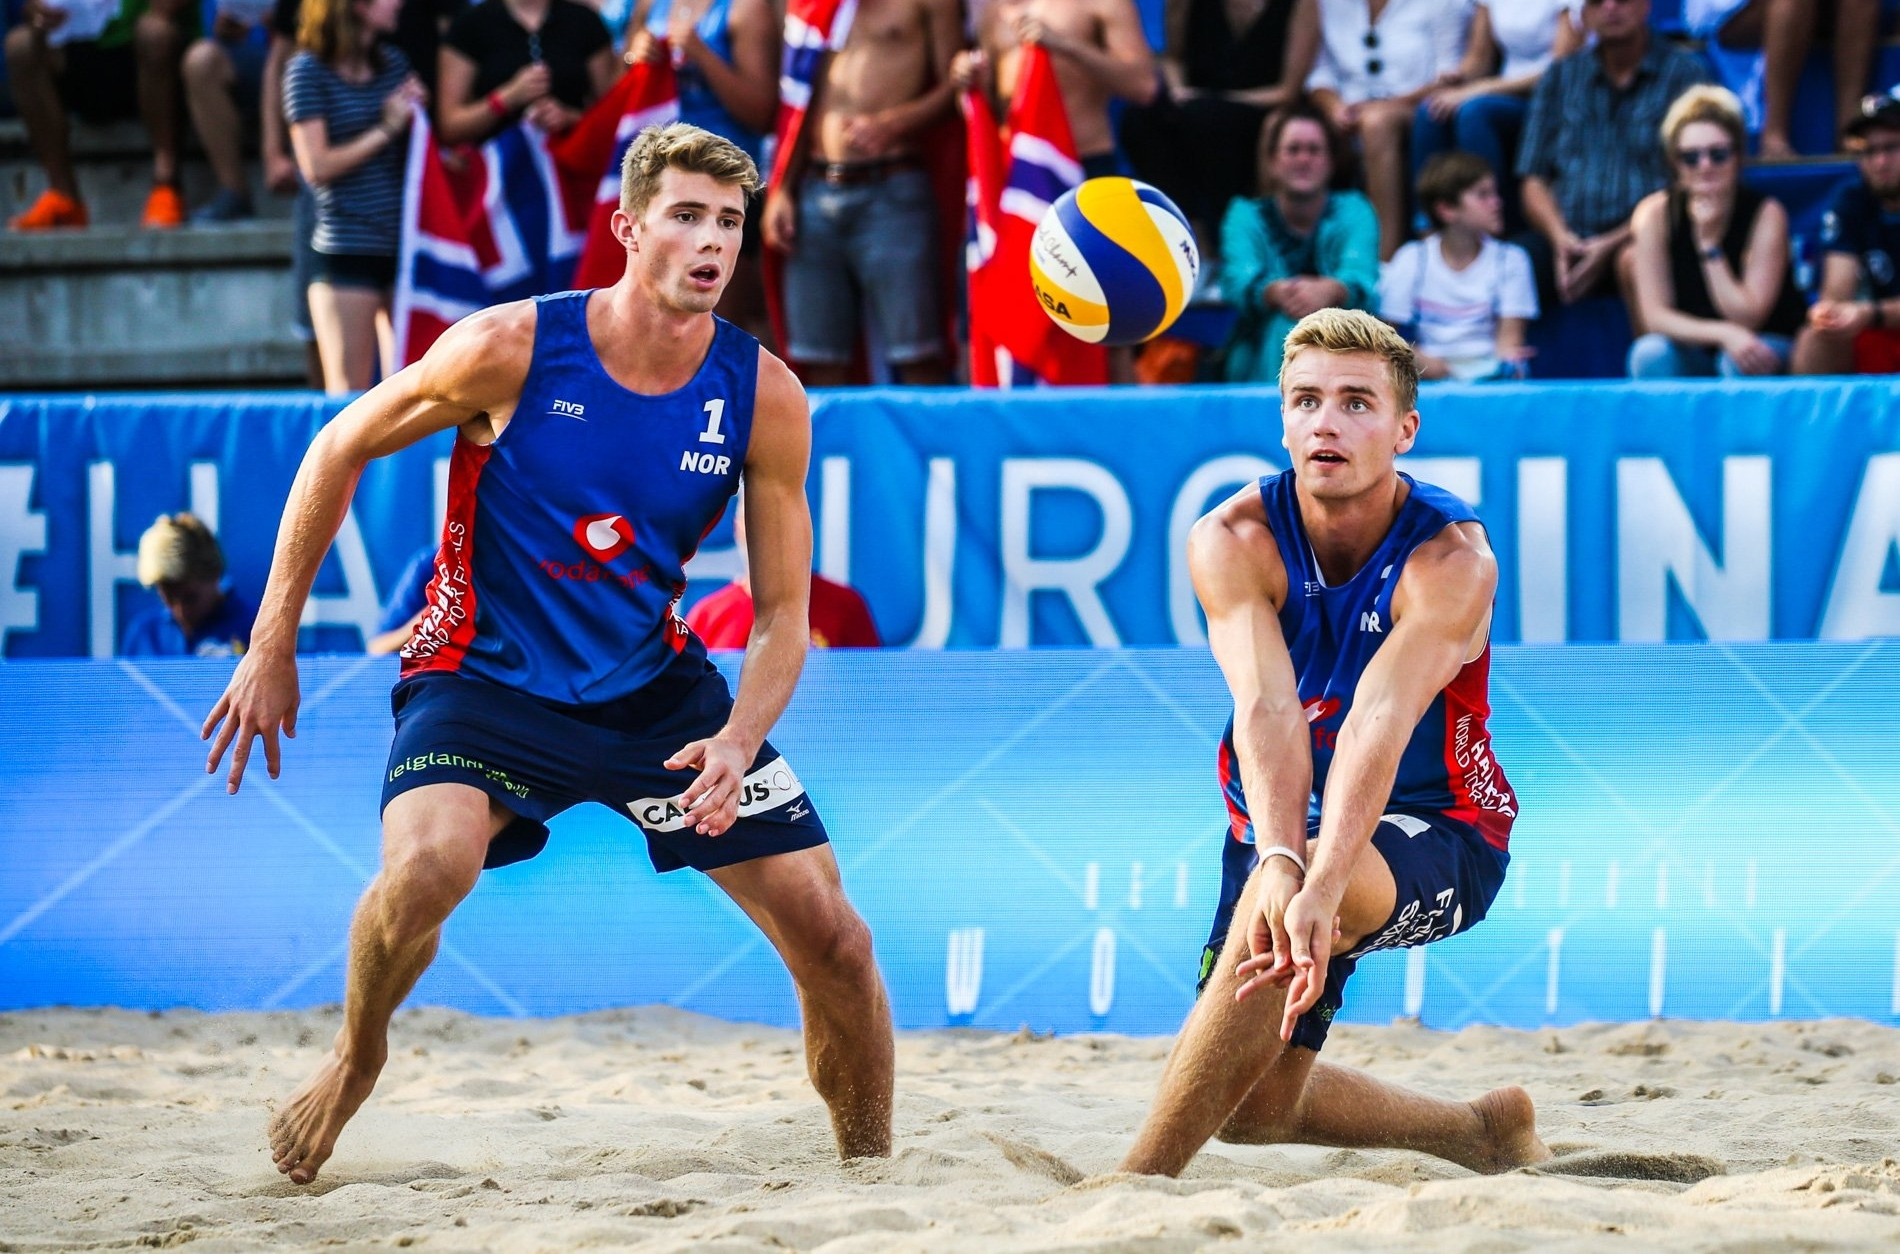 Anders and Christian in action on their way to gold at the Hamburg Finals